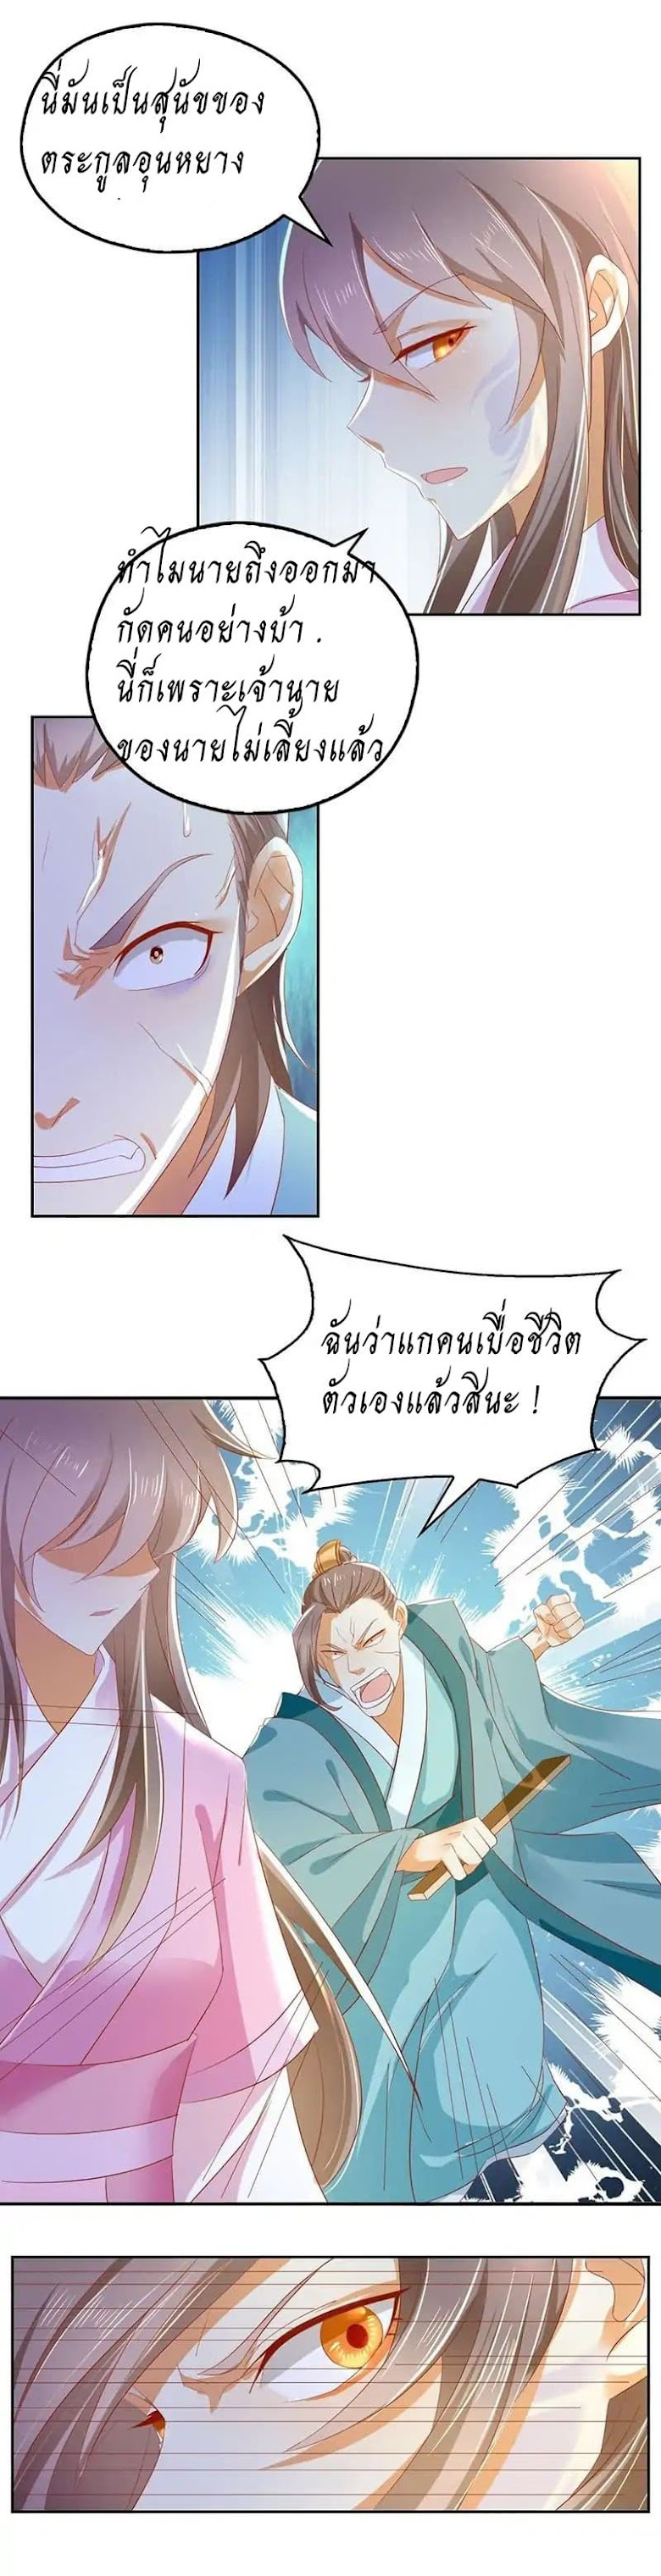 The Evil King s Wicked Consort - หน้า 12